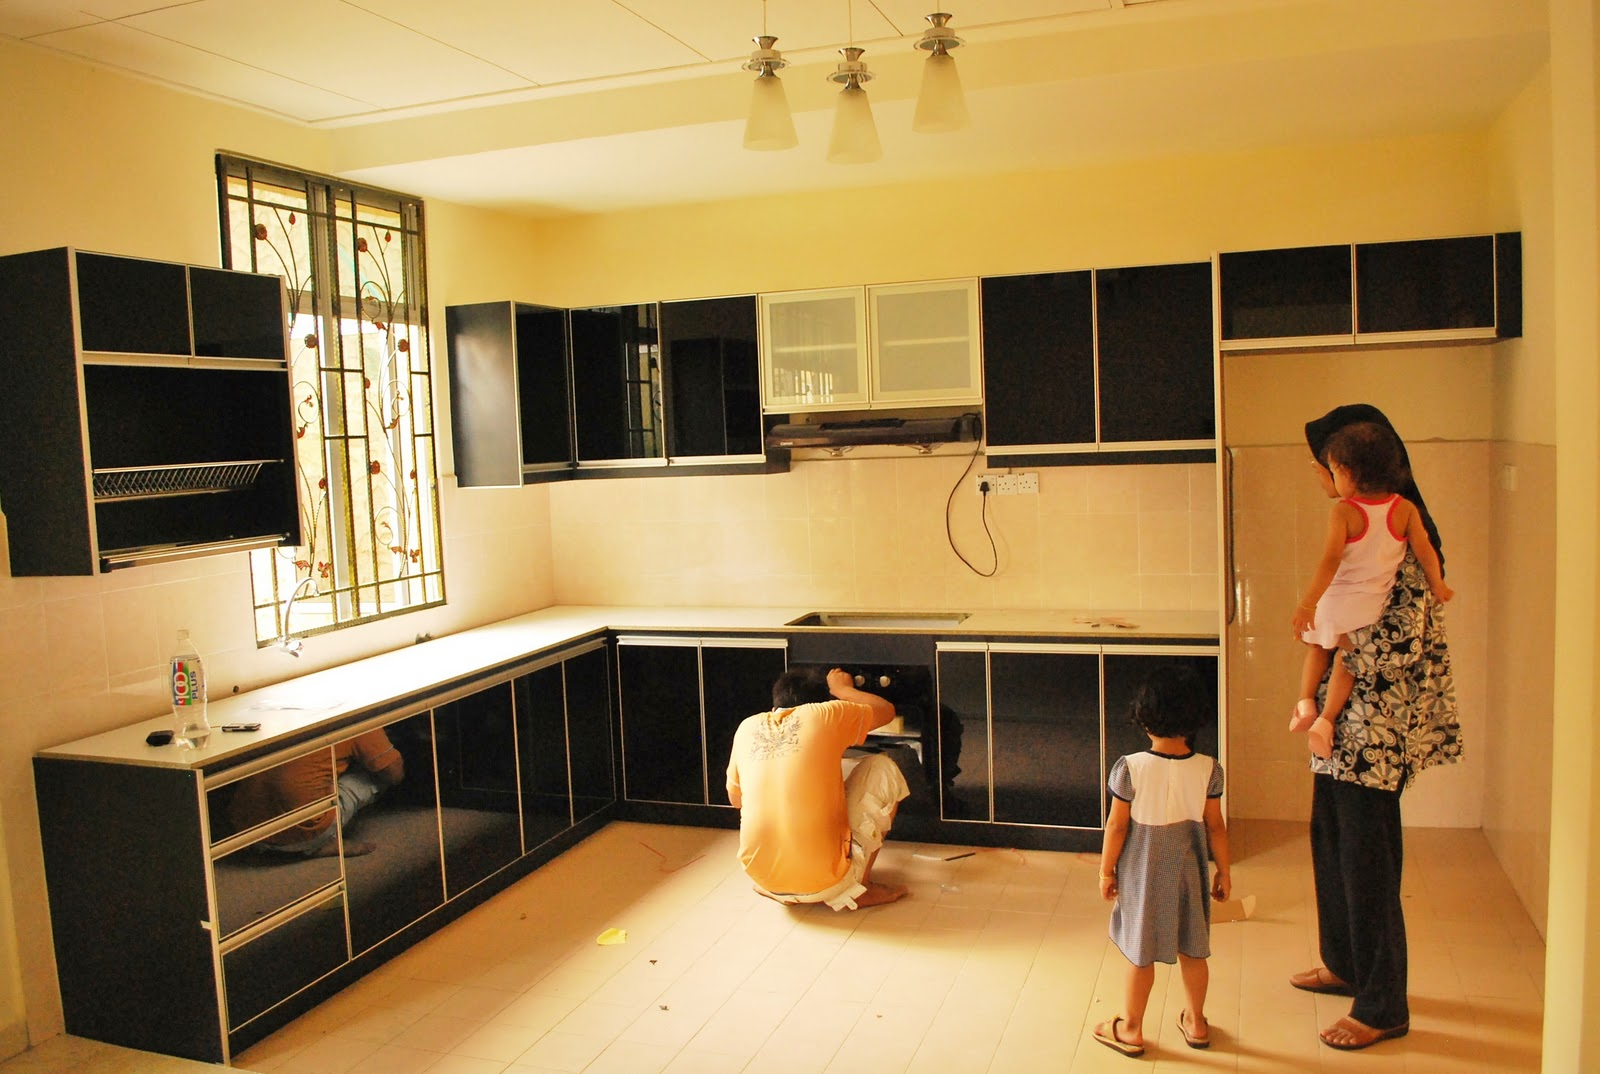 Related image with Kabinet Dapur Pasang Siap